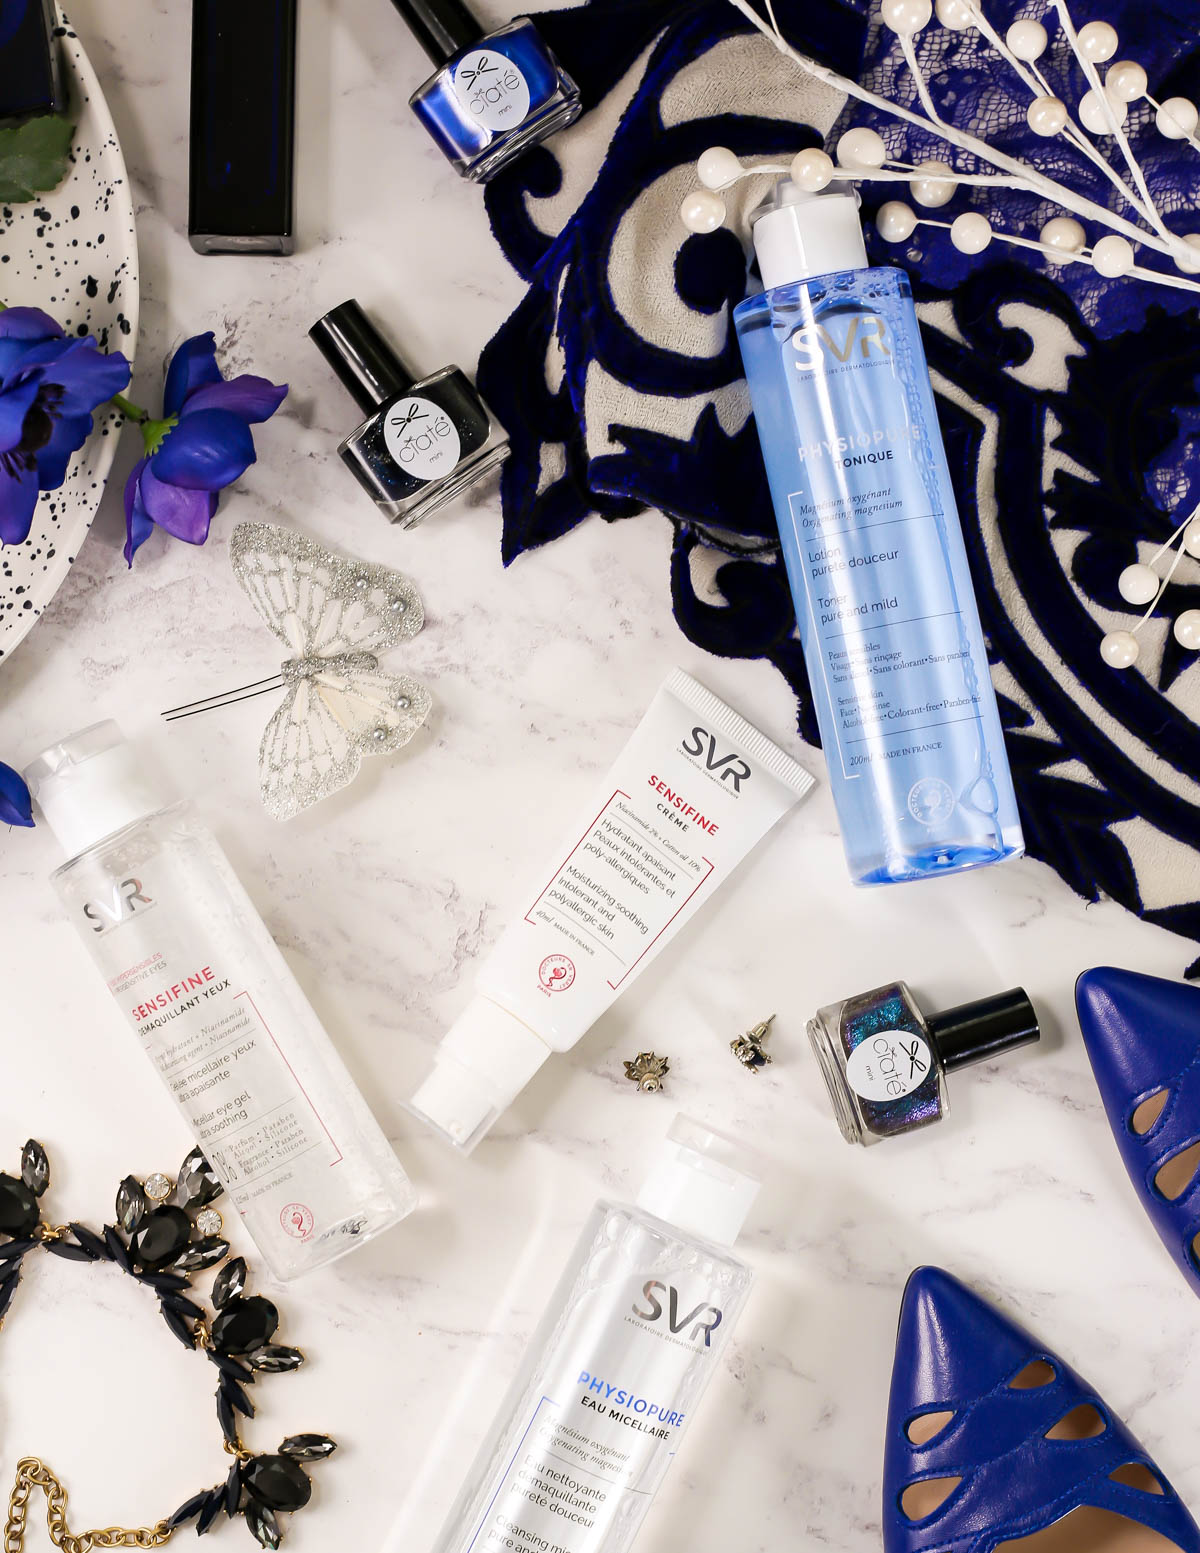 SVR Laboratoires | The French Pharmacy Brand For Every Skincare Need feat scattered SVR Sensifine & Physiopure range with blue themed accessories